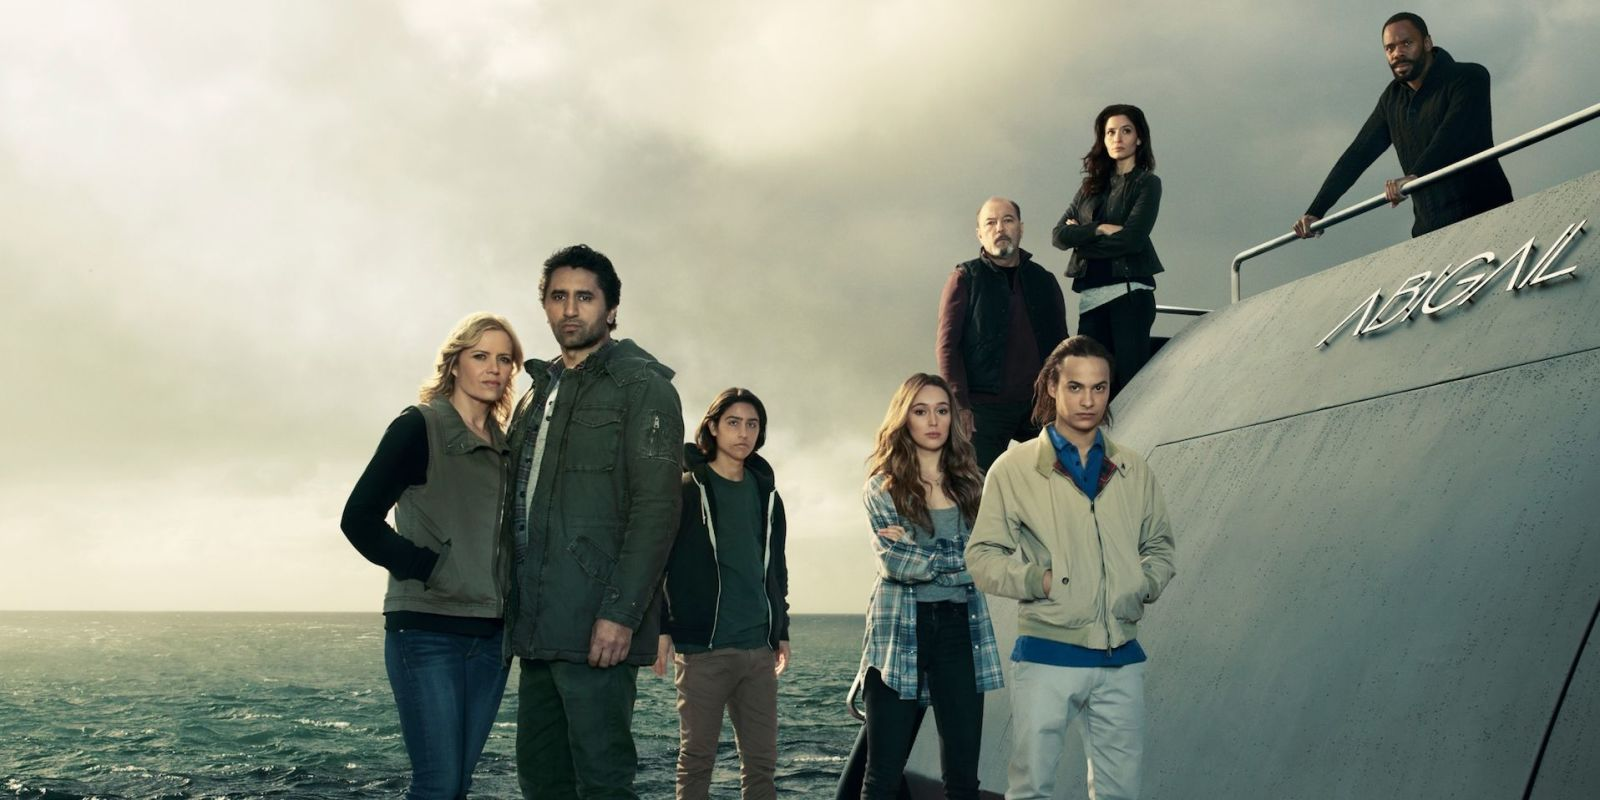 fear-the-walking-dead-season-2-cast